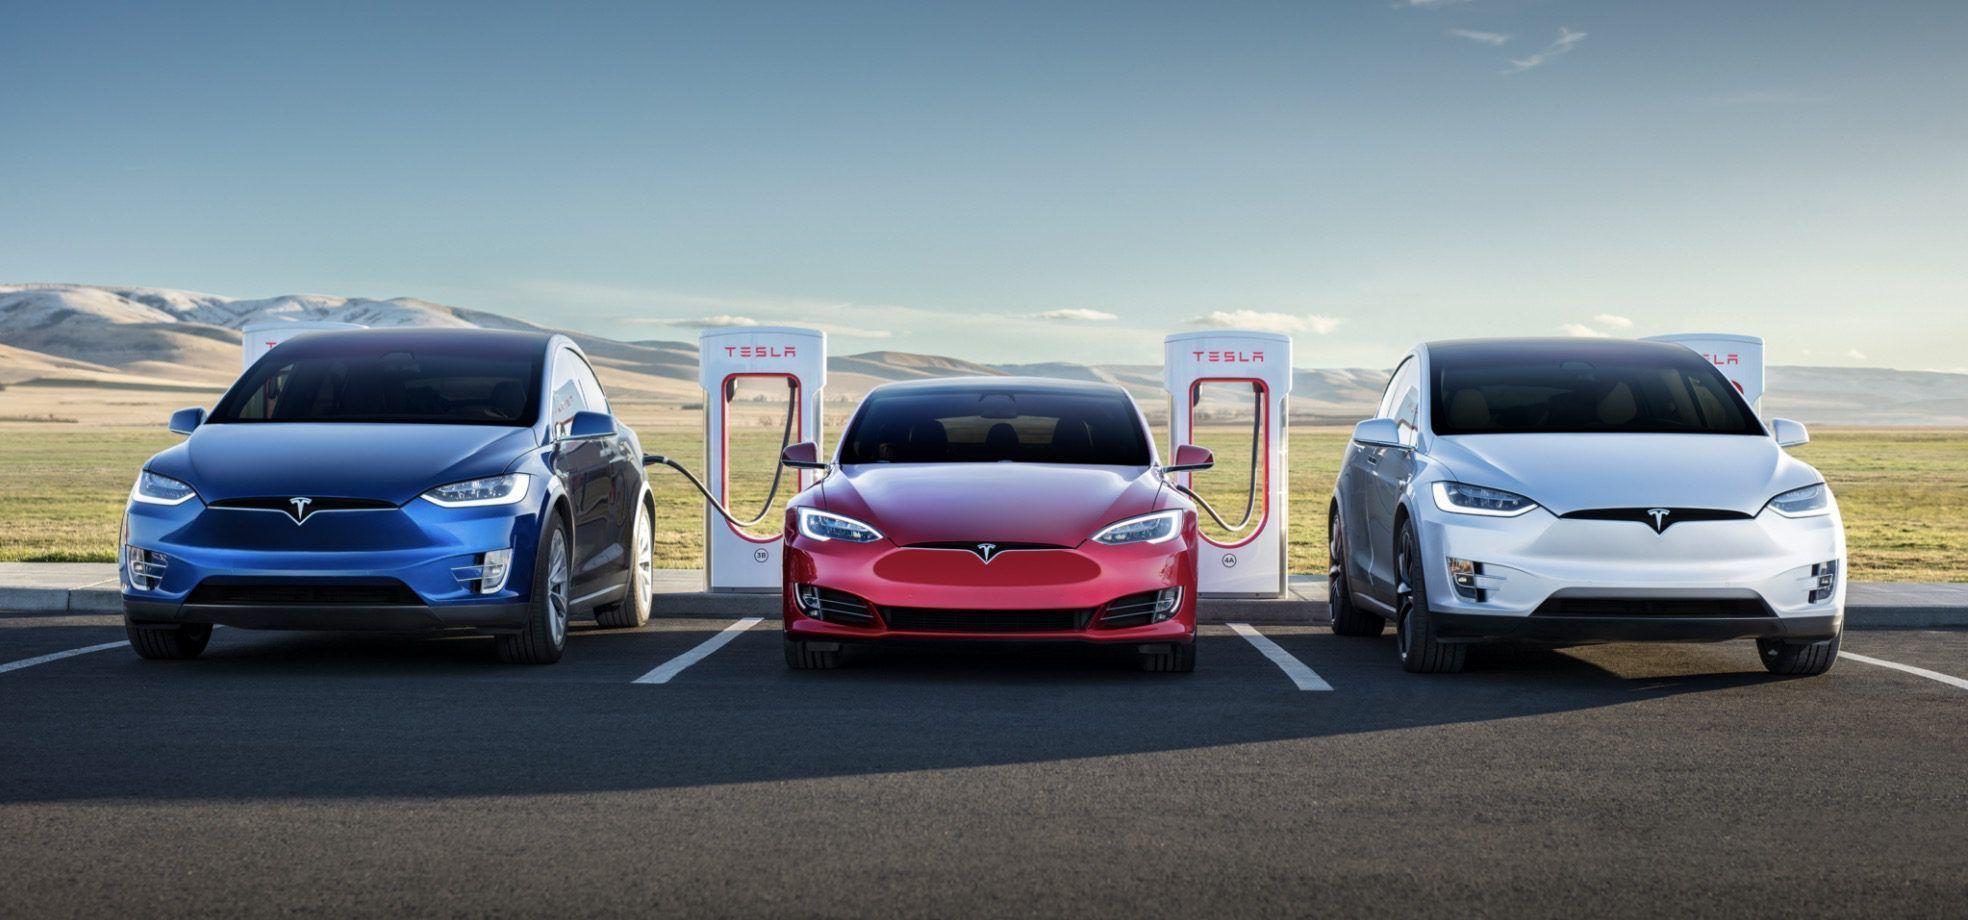 Tesla unlocks even more power (150 kW) out of existing